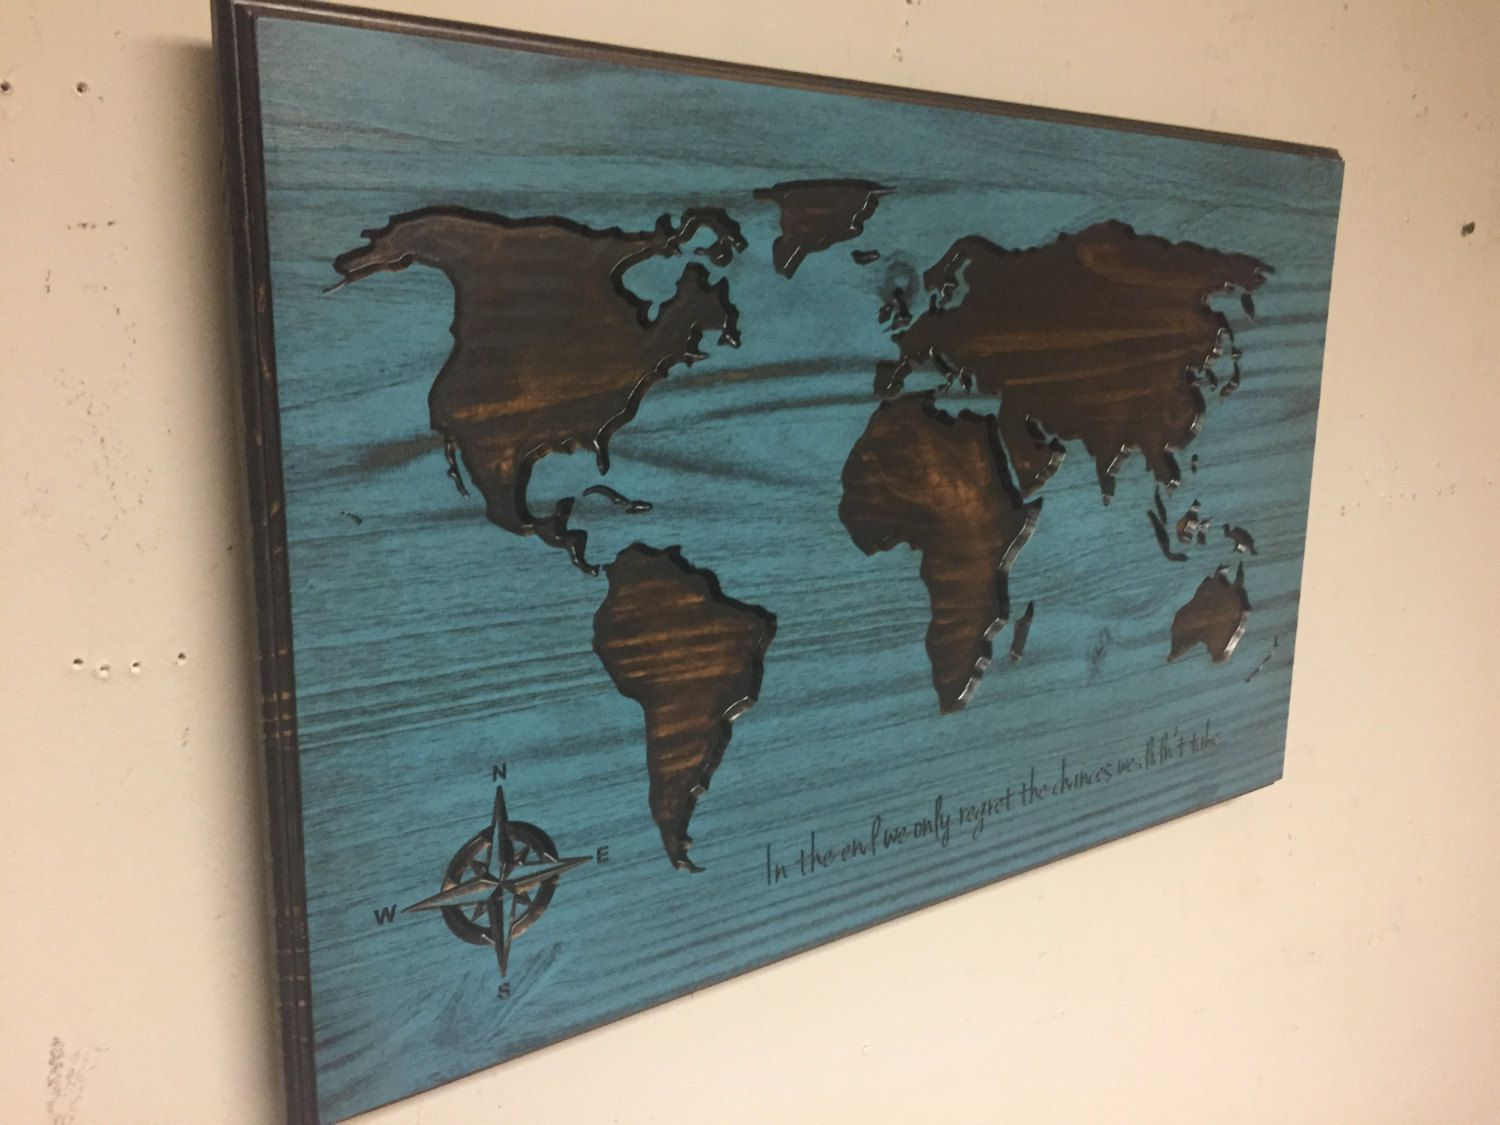 Wooden world map map wall art large carved map vintage map wooden world map map wall art large carved map vintage map rustic gumiabroncs Image collections